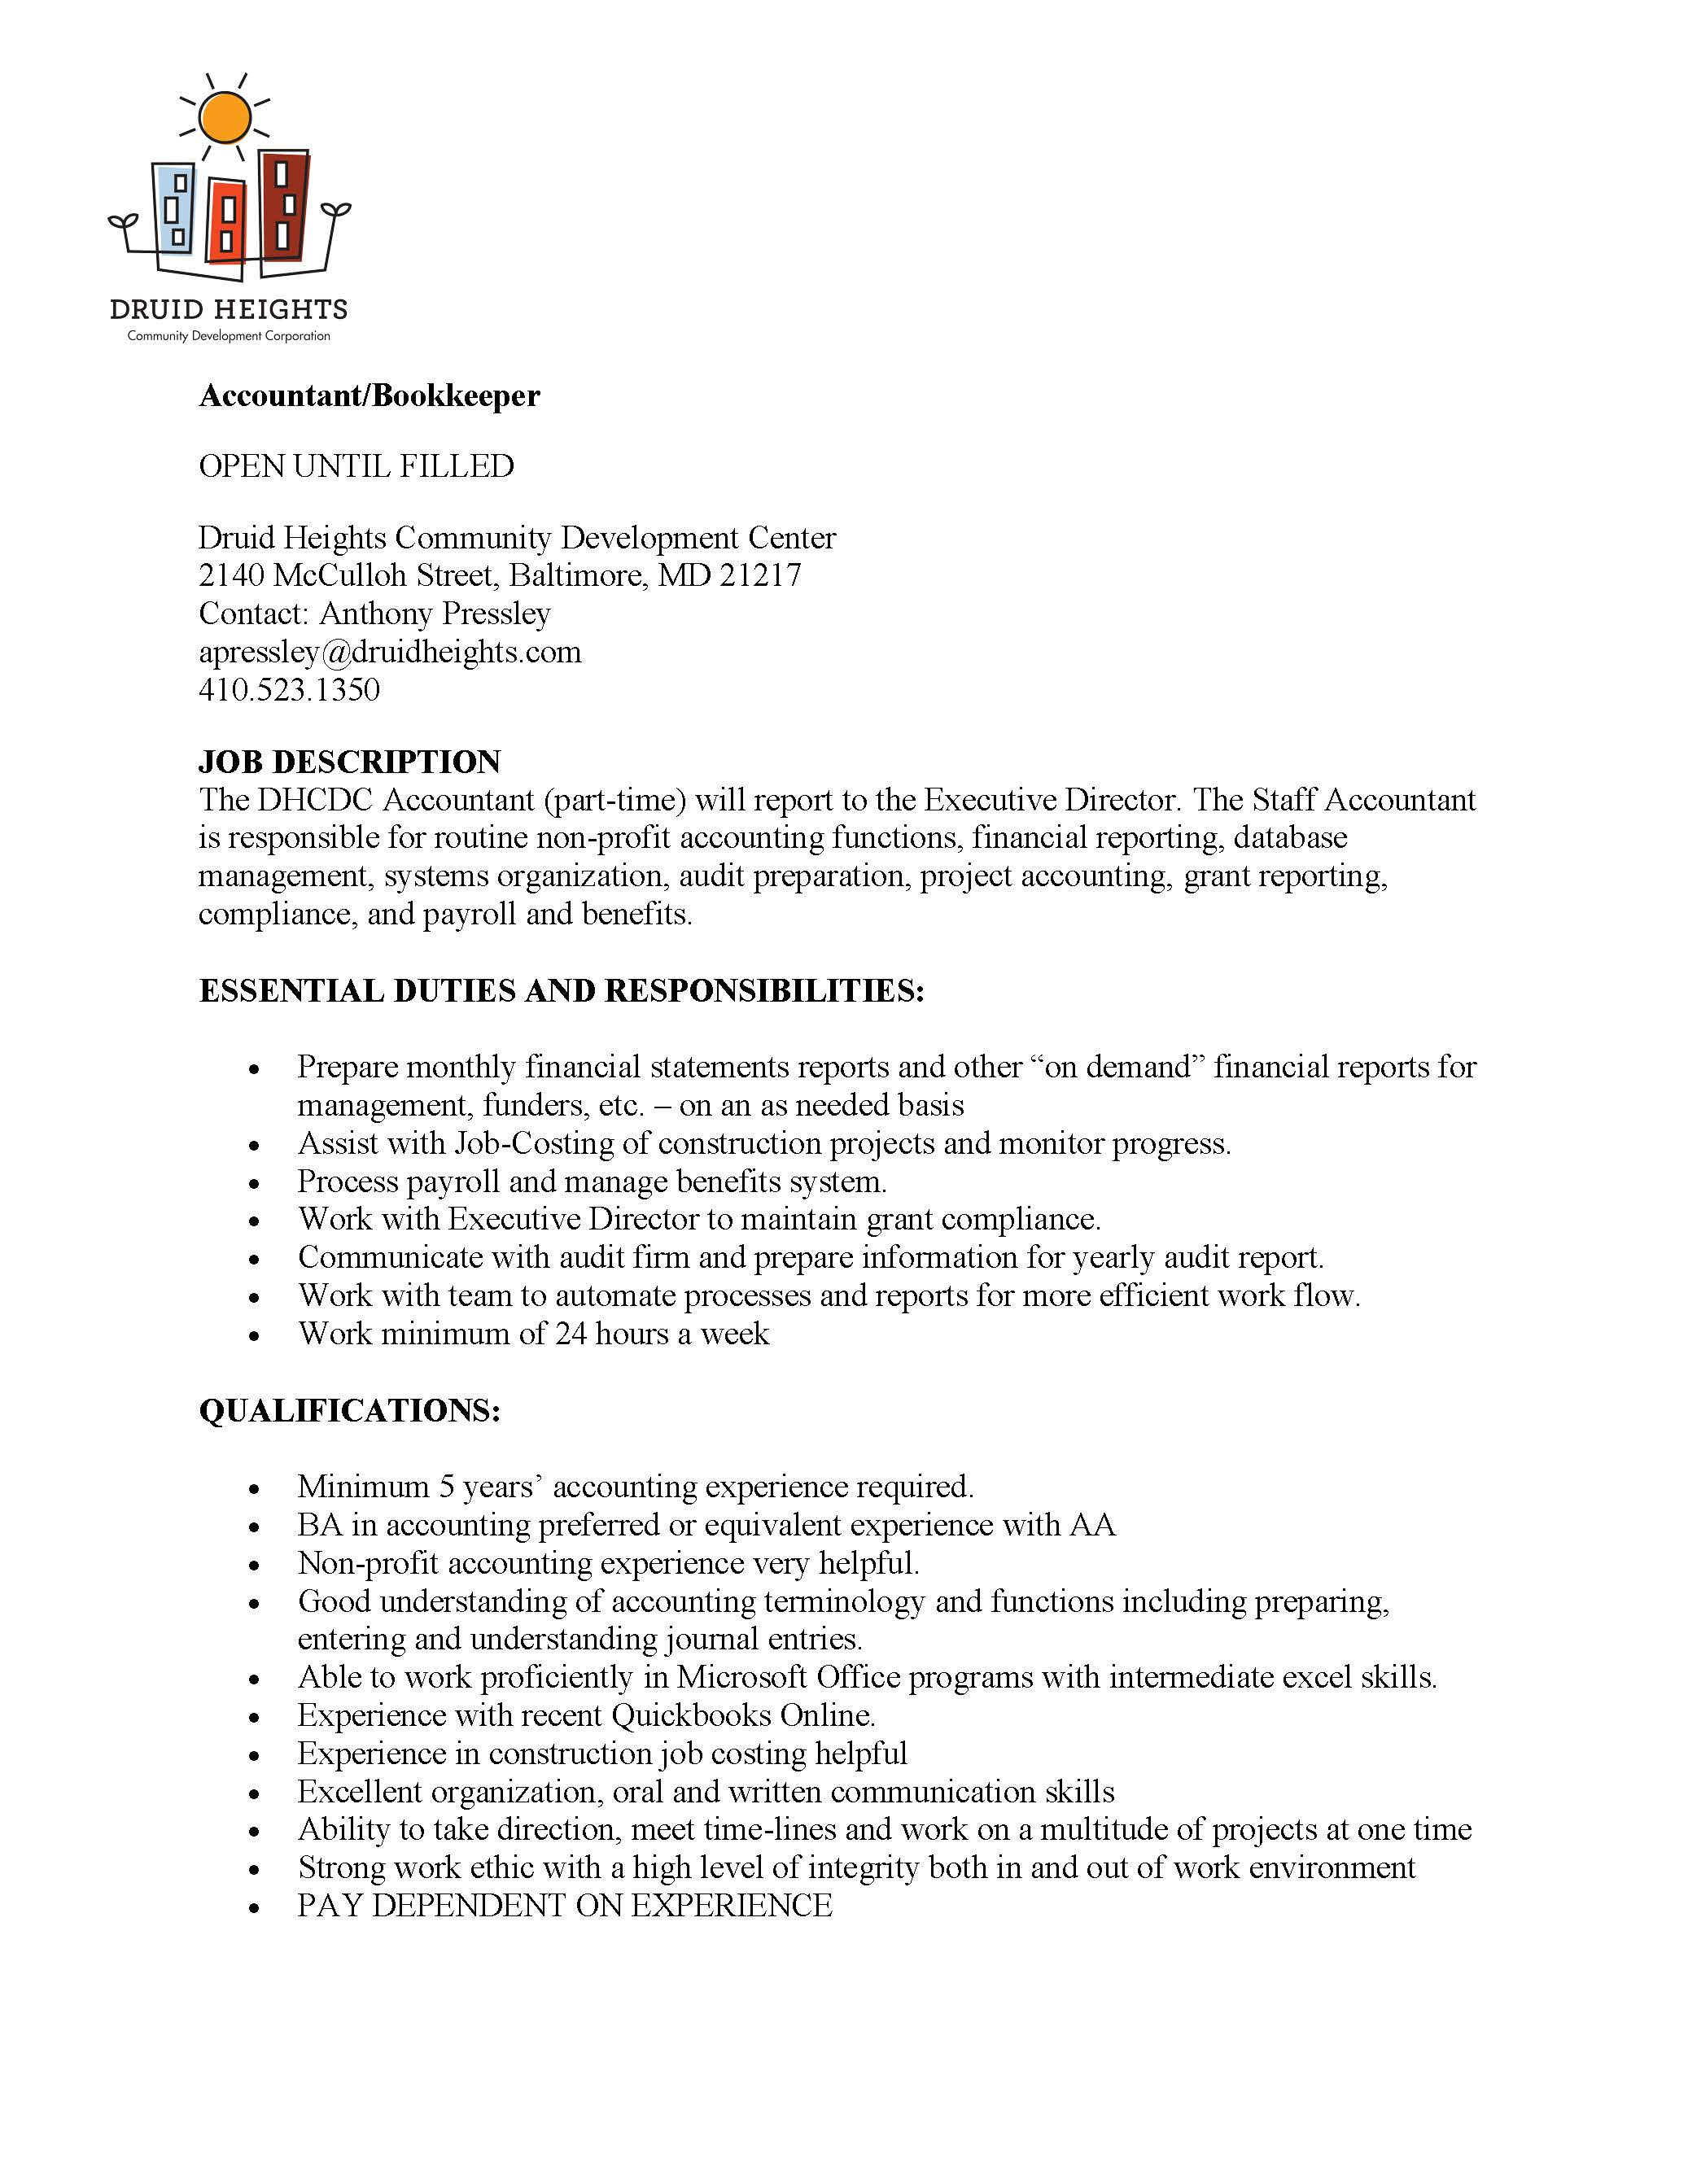 Accountant Position